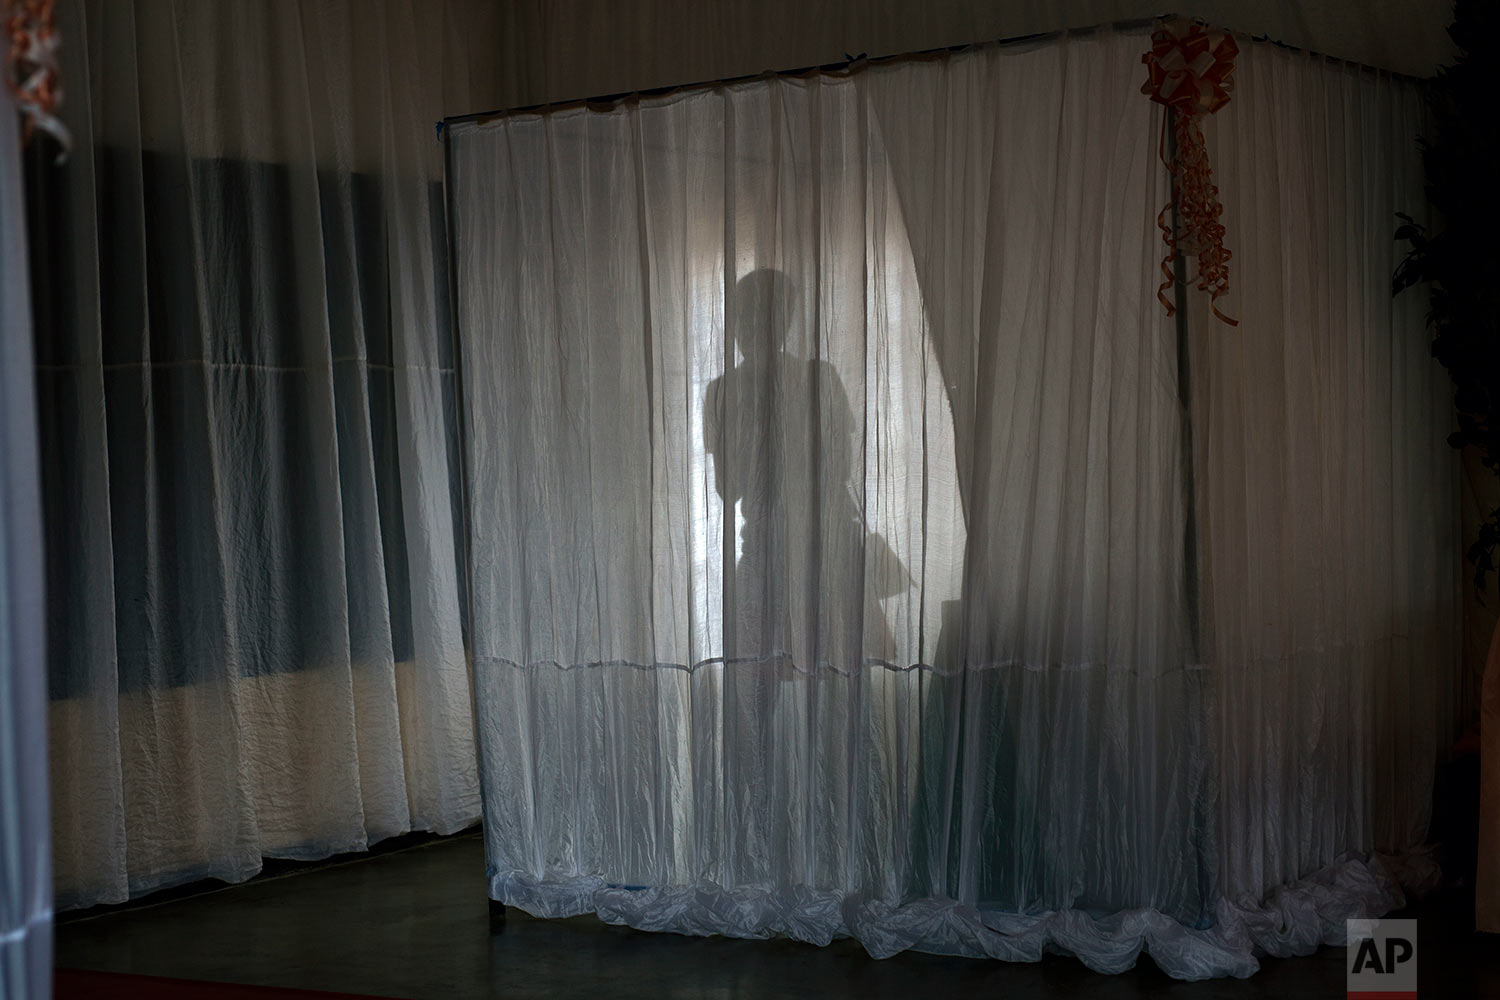 A Rwandan woman exits the booth before casting her election vote in Rwanda's capital Kigali Friday Aug. 4, 2017. Rwandans voted in an election Friday that the country's longtime president is widely expected to win, after the government disqualified all but three candidates. (AP Photo/Jerome Delay)